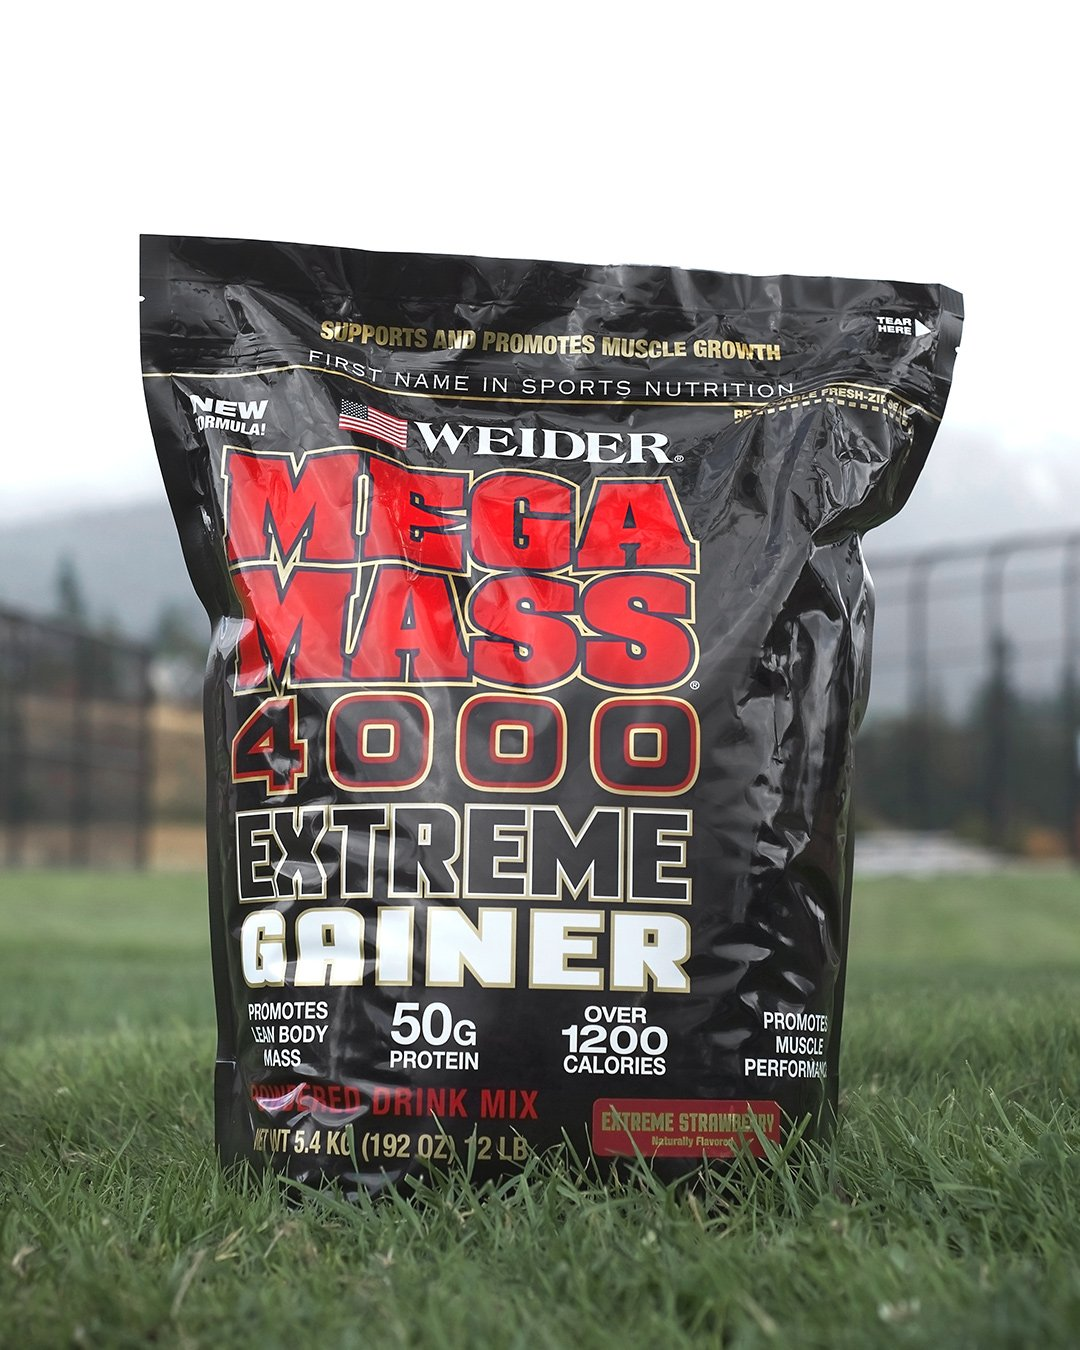 Weider Megamass 4000 Extreme Gainer - Our Best Selling Gainers - 50 Grams of Protein per Serving - Over 1,200 Calories - Over 250 Grams of Carbs by Weider (Image #6)